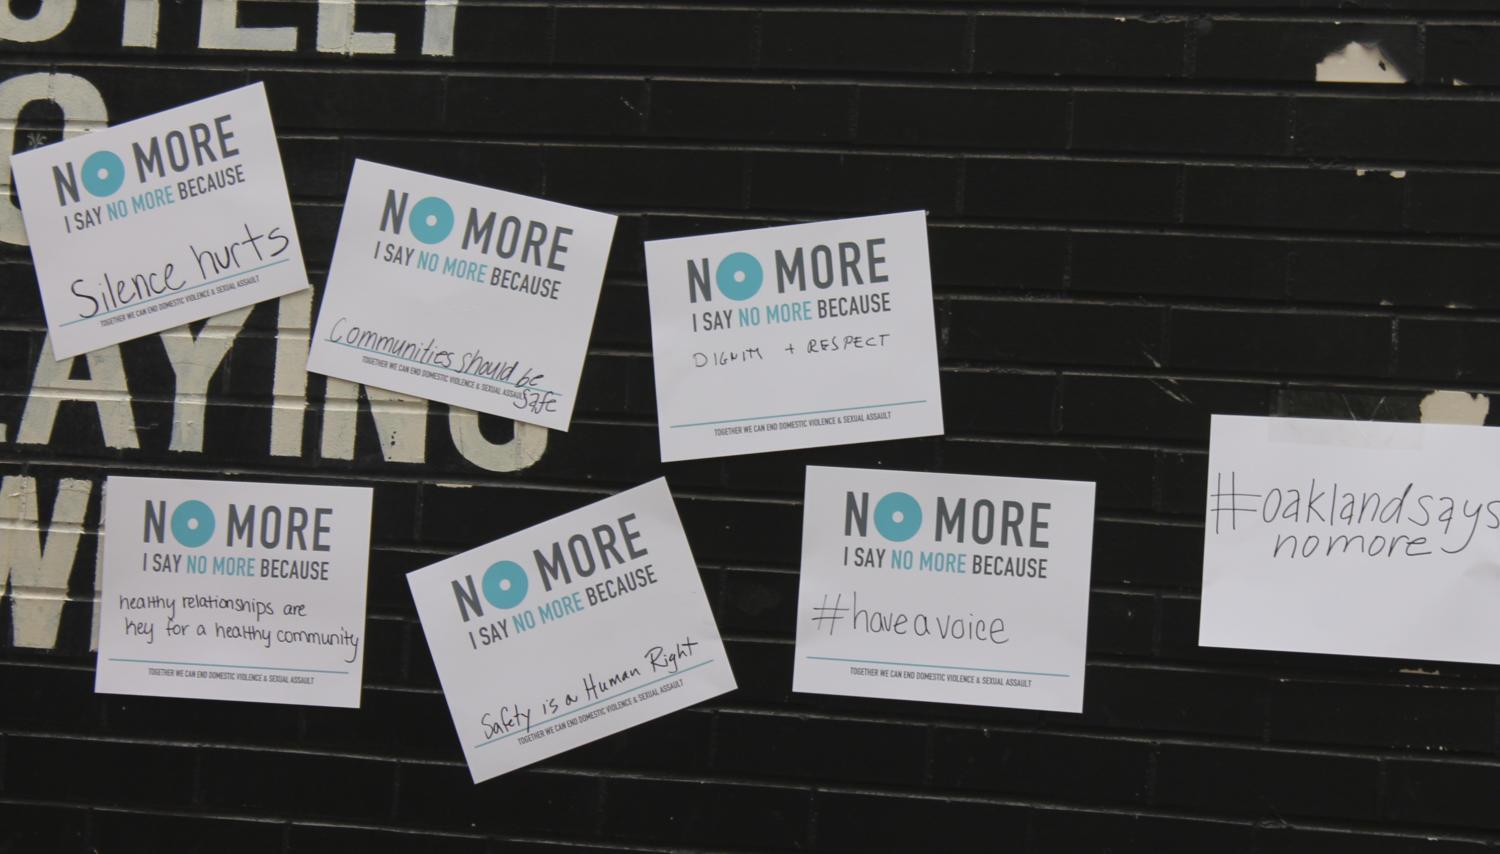 Oakland Says No More, a campaign which hopes to end workplace sexual harassment and violence, encouraged supporters to sign their petition at an event hosted on Oakland Avenue Tuesday evening. (Photo by Samuel Weber | Staff Writer)